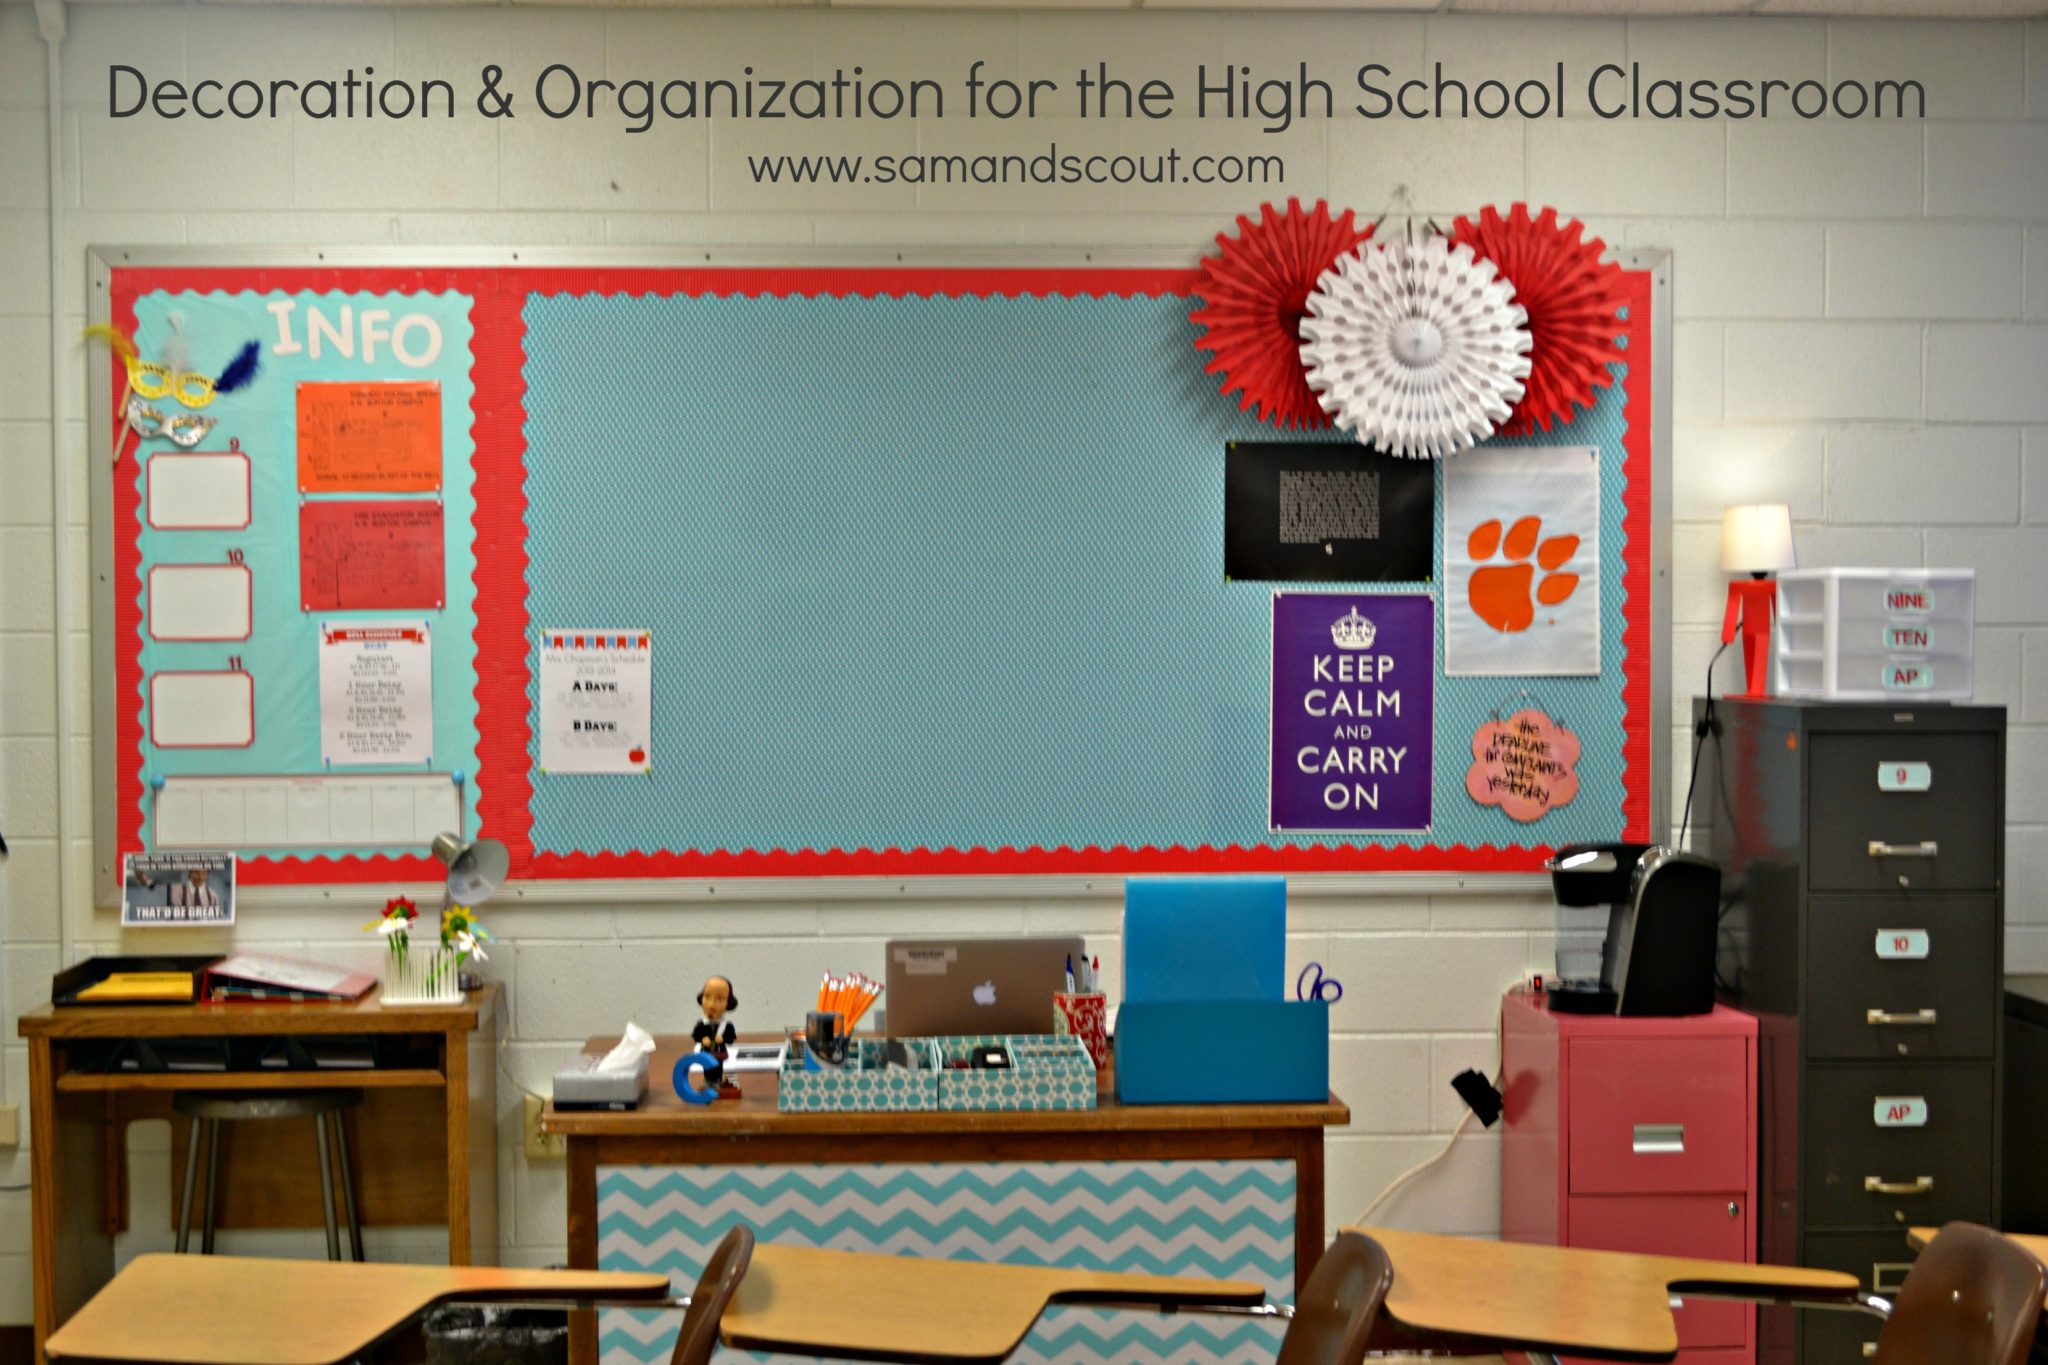 Decoration & Organization for the High School Classroom